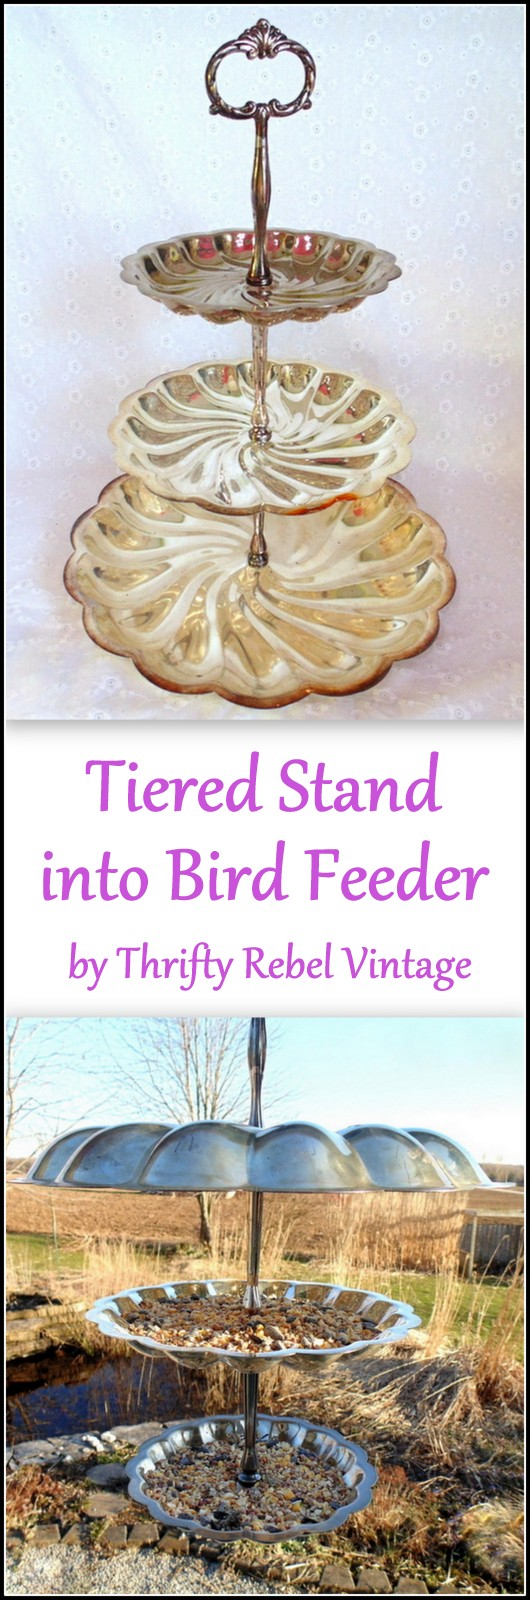 repurposed metal tiered stand into triple decker hanging bird feeder before and after